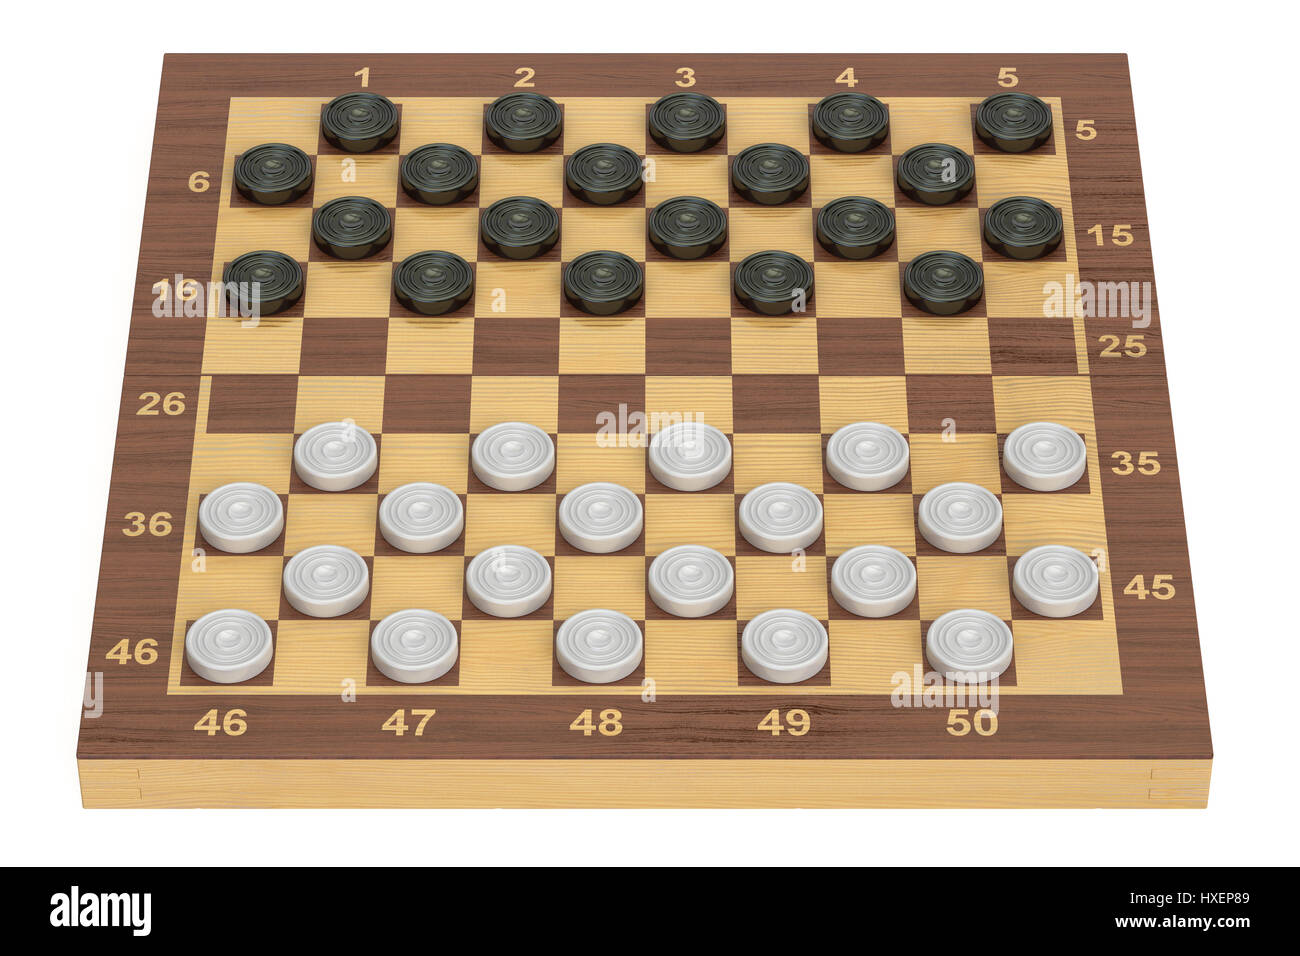 Chess Board Buy International Checkers Game Board And Pieces 3d Rendering